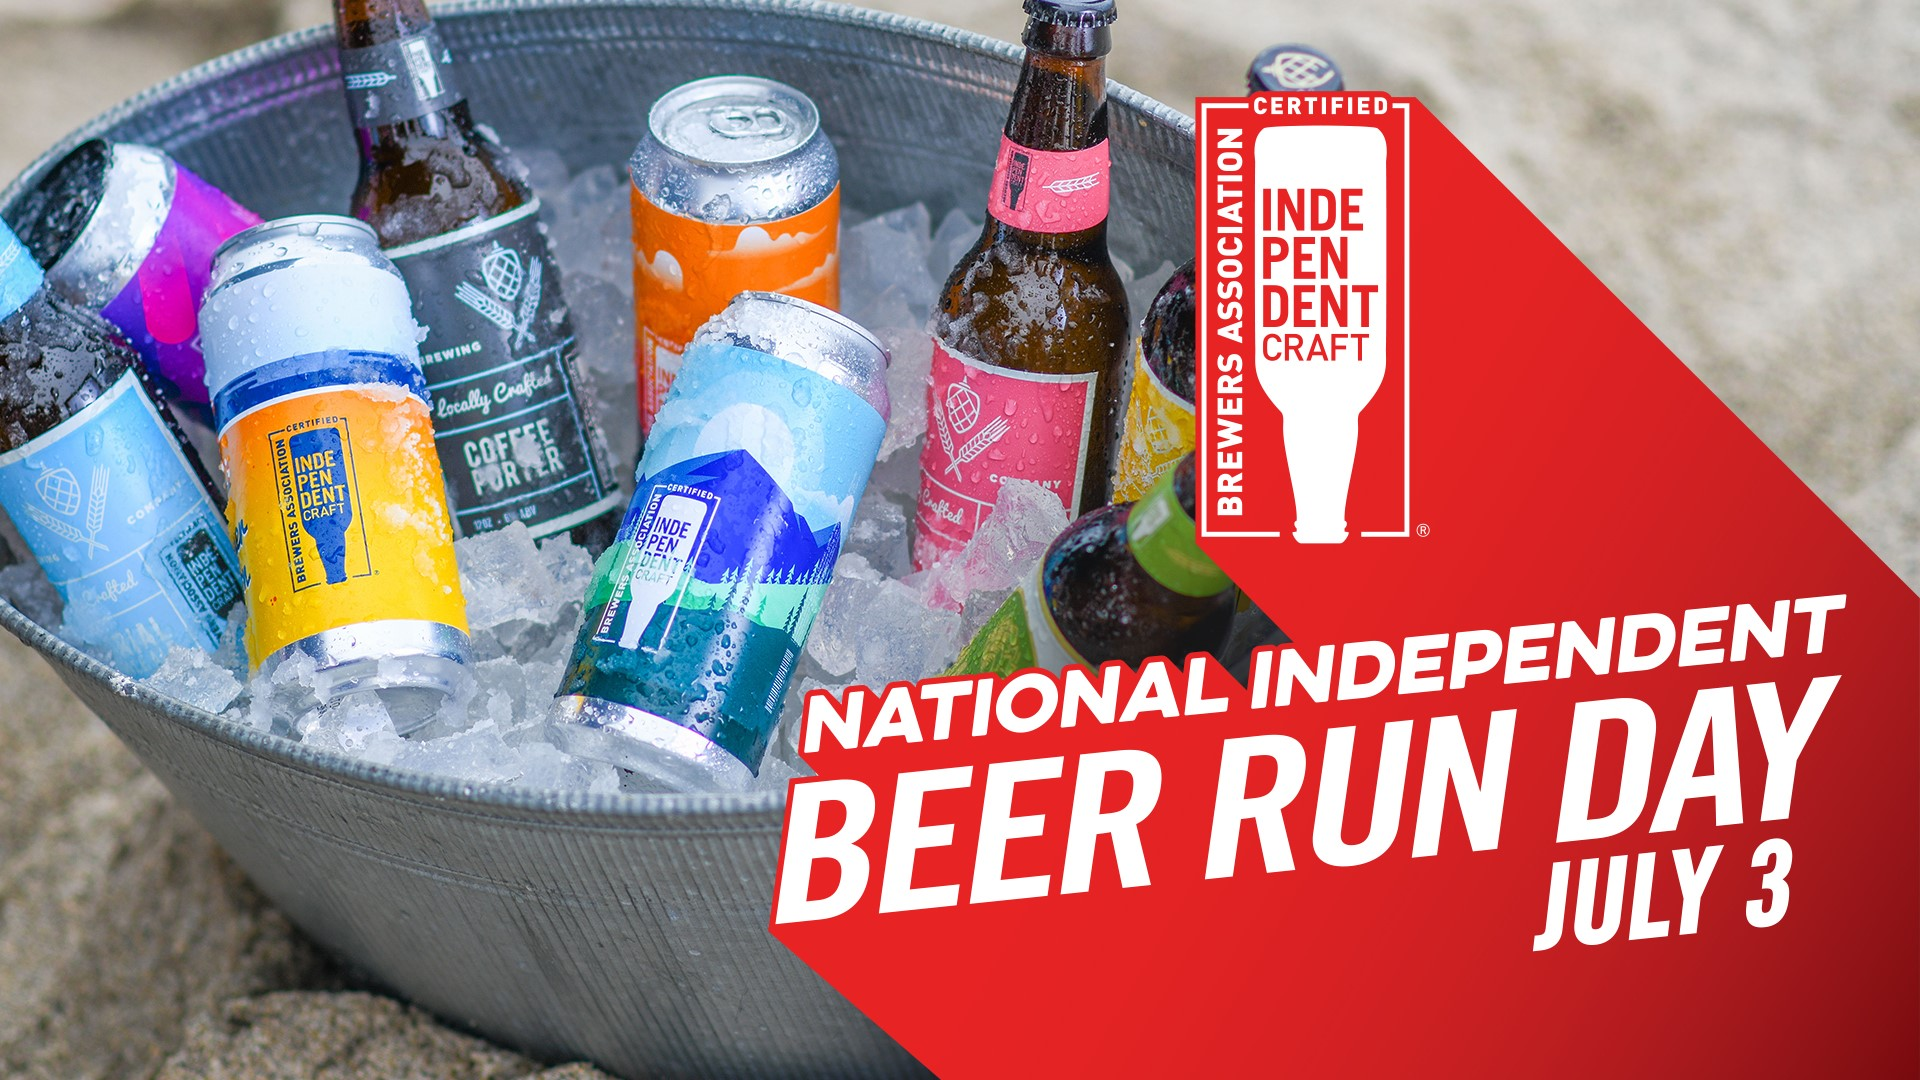 National Independent Beer Run Day - July 3, 2020